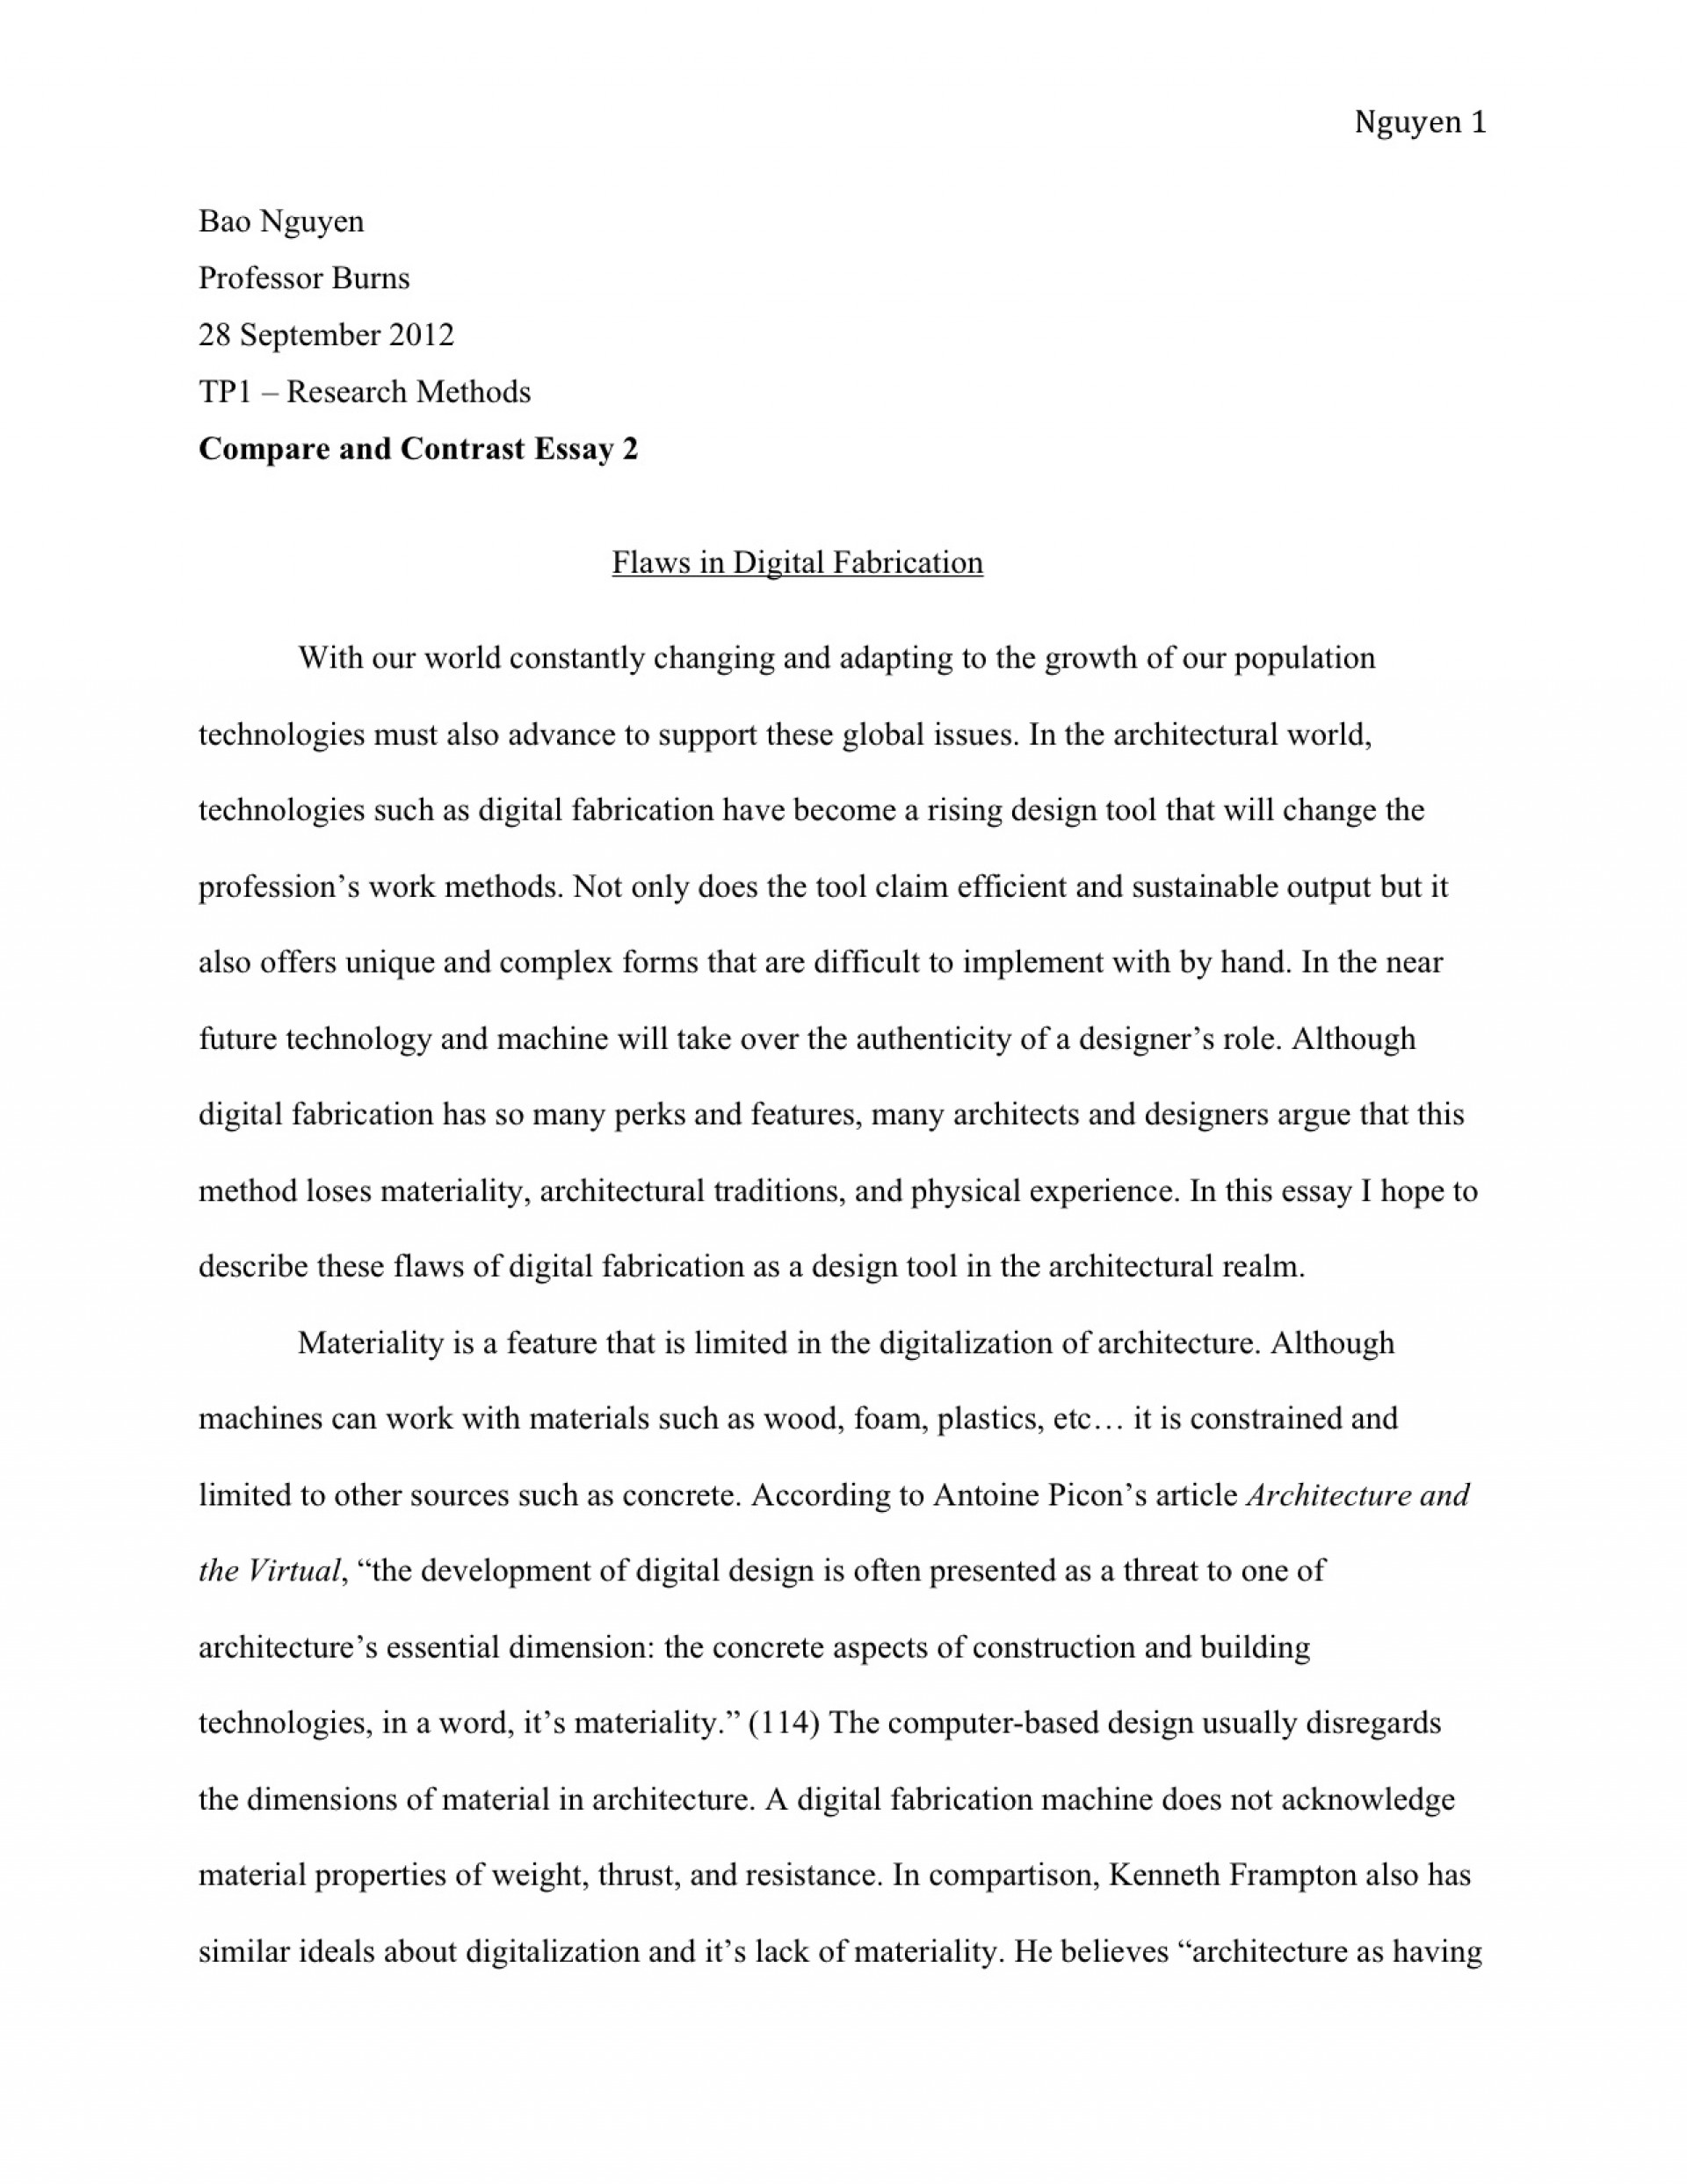 005 How To Write An Essay Example Tp1 3 Shocking In Mla Format 2018 Introduction For College Paper Apa 1920